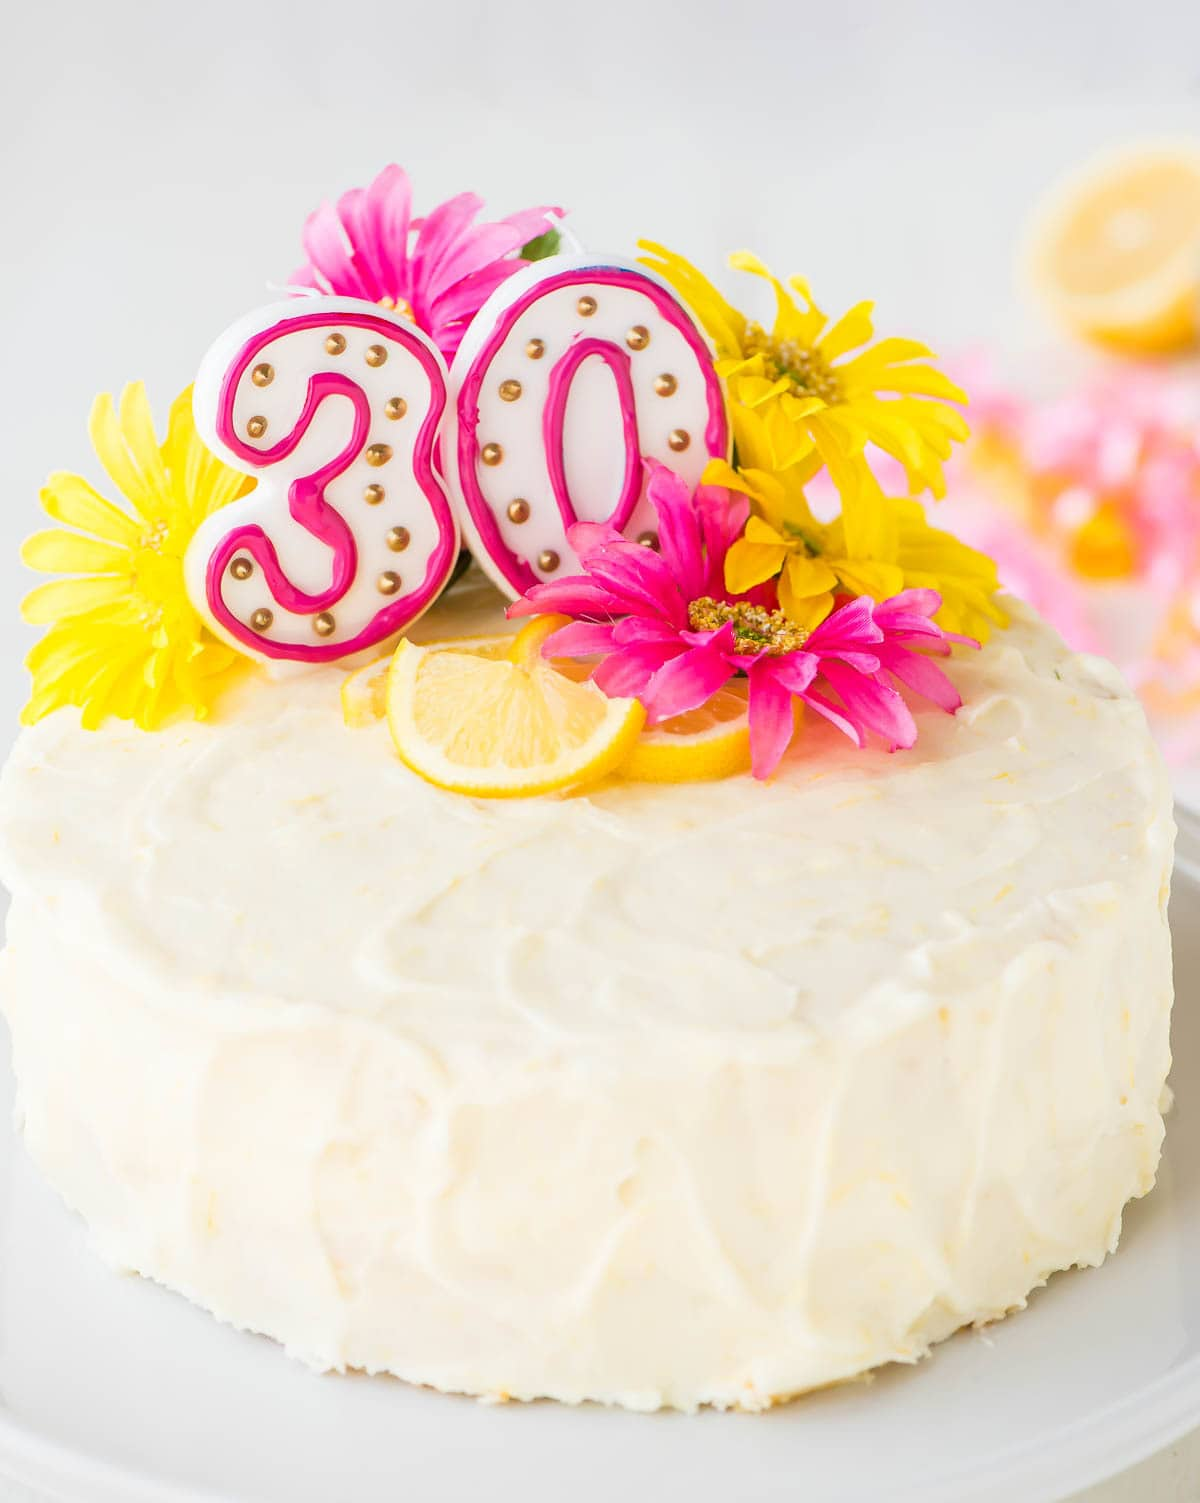 lemon layer cake decorated with fresh yellow and pink flowers and candles for a 30th birthday